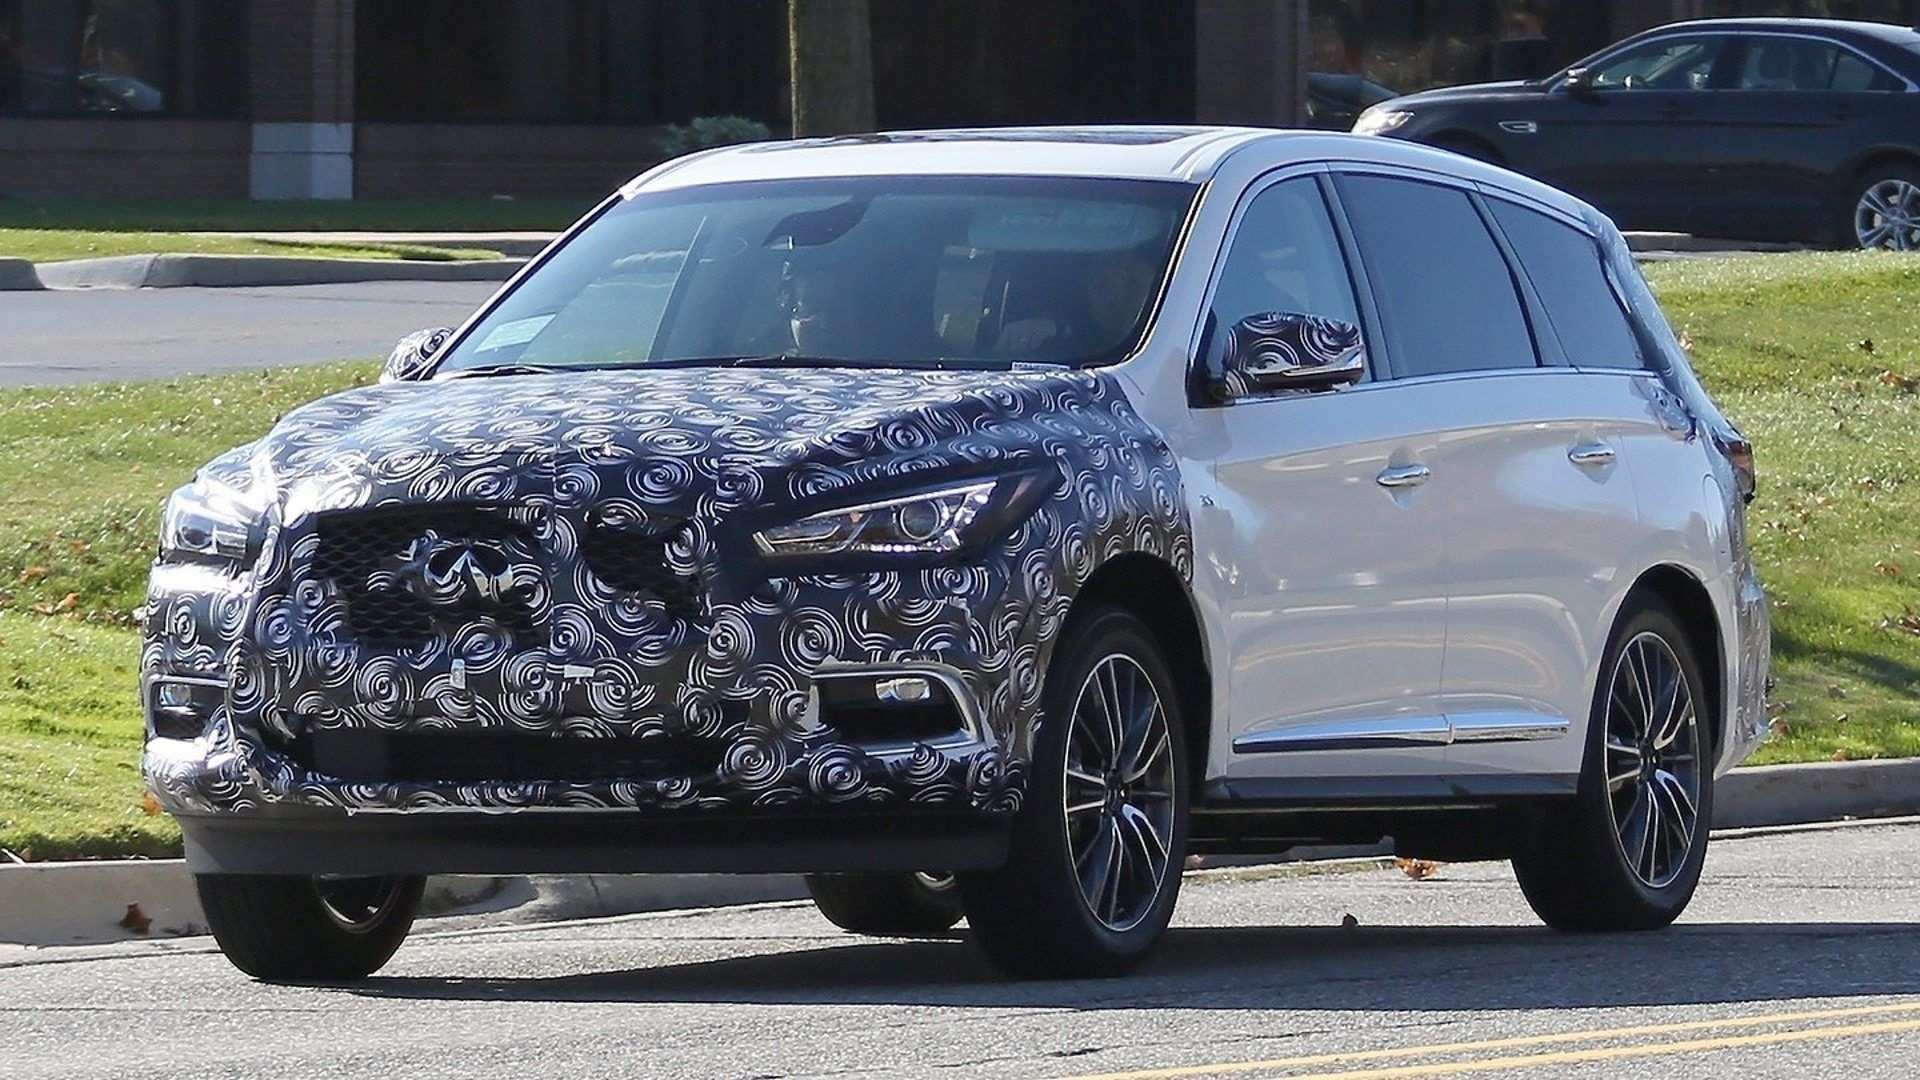 34 The Best Infiniti Qx60 2019 Price Picture Price by Best Infiniti Qx60 2019 Price Picture